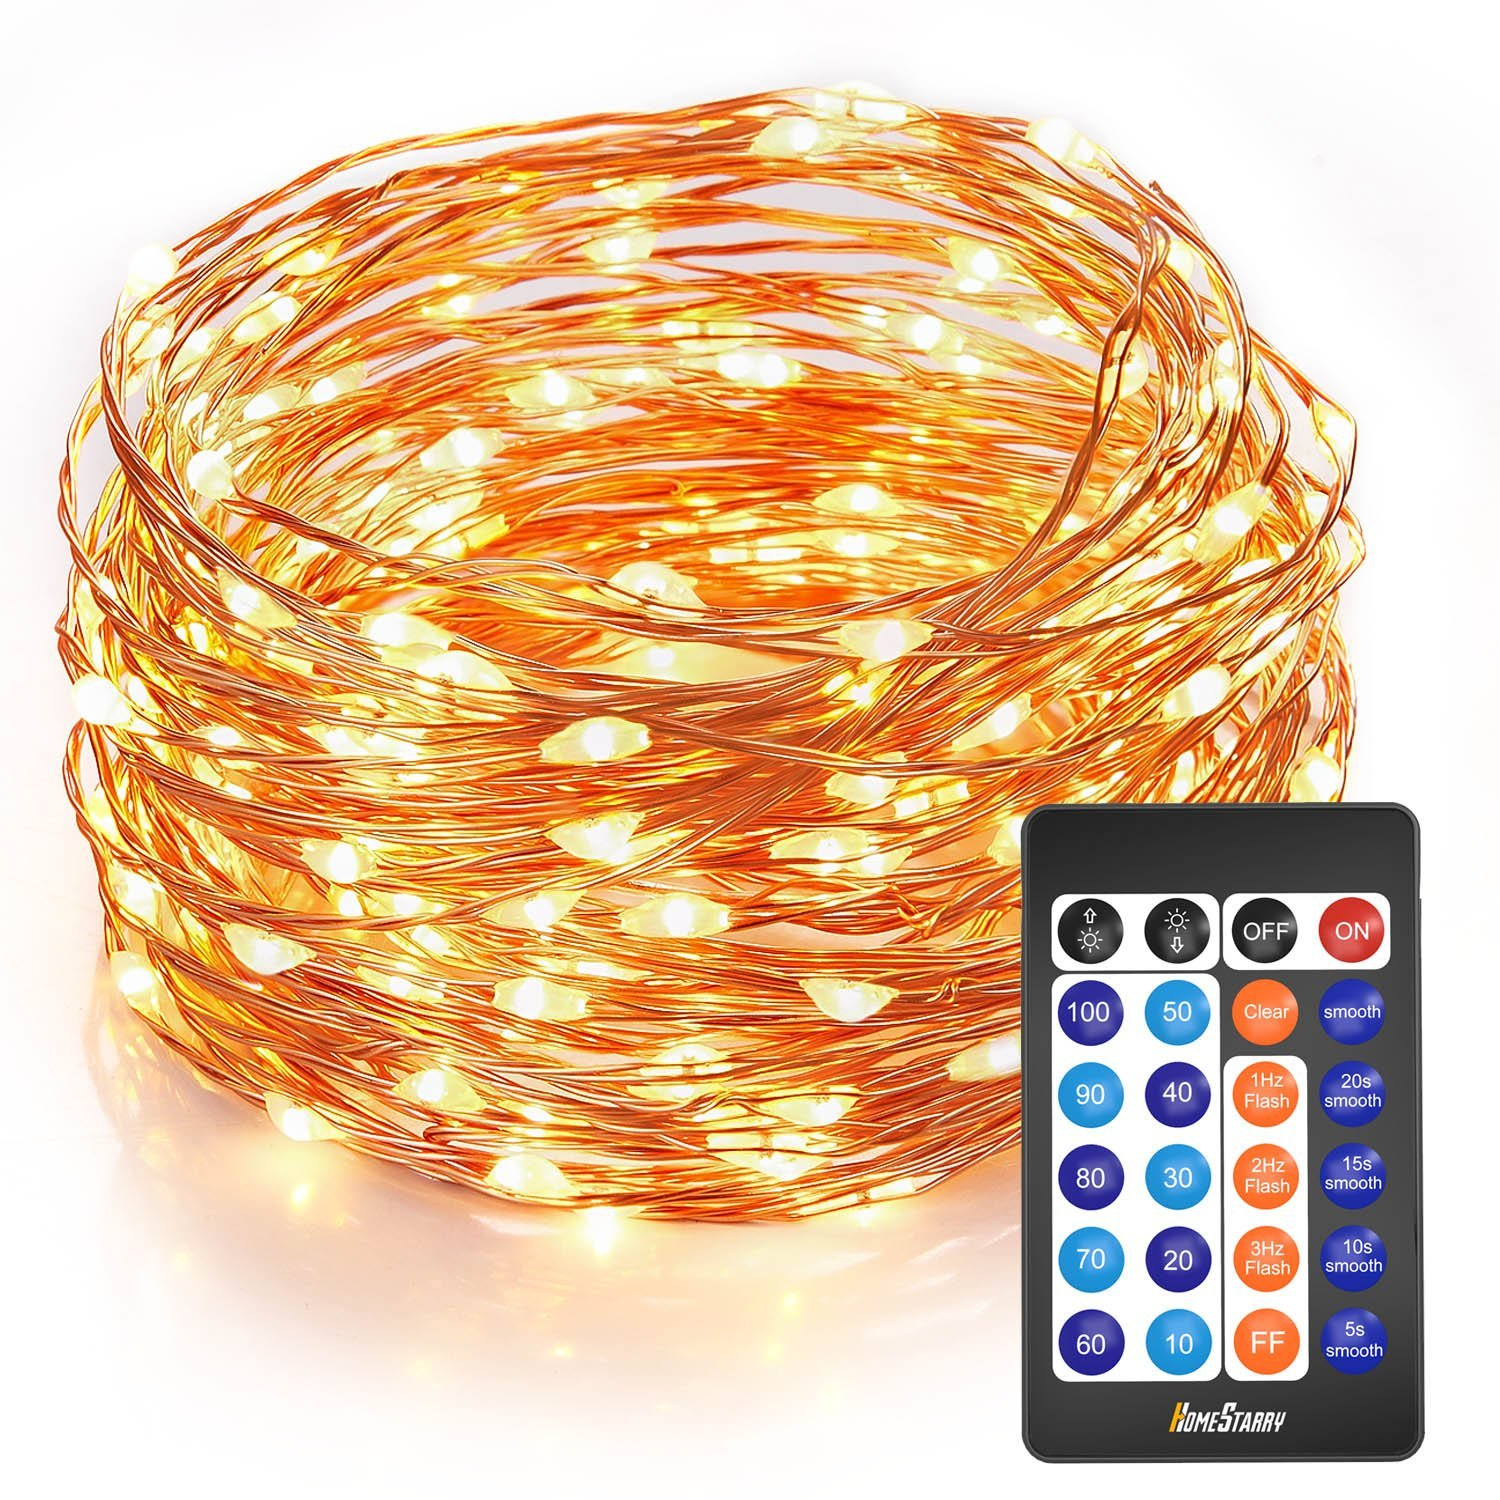 Homestarry Outdoor String Lights,Dimmable LED Starry String lights Perfect for Bedroom,Garden,Party,Indoor and Outdoor Decorations (100LEDs 33ft,Cooper Wire,WarmWhite,Remote Control)